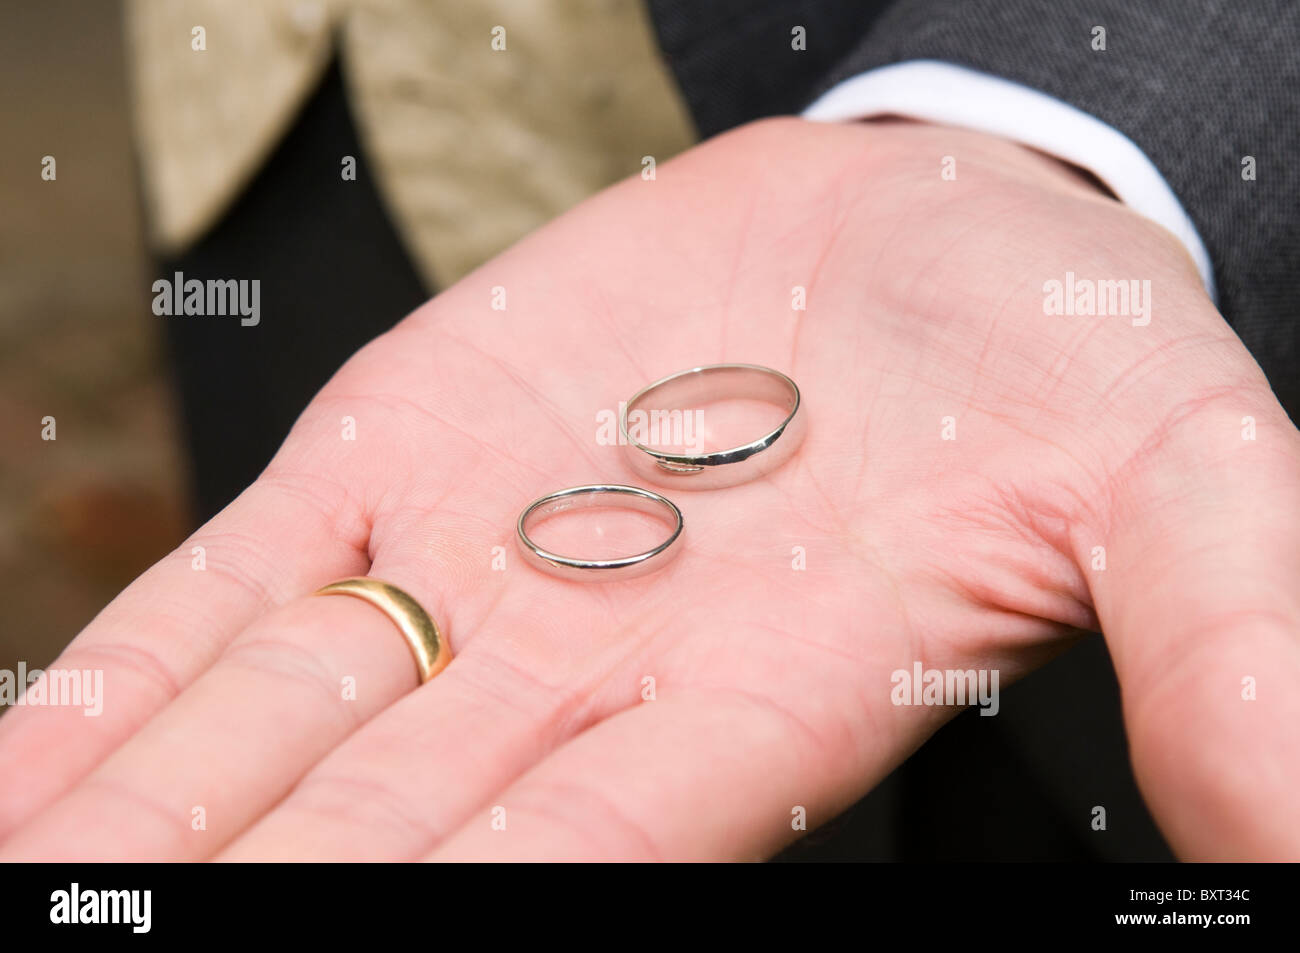 Wedding Rings In Palm Hand Stock Photos & Wedding Rings In Palm Hand ...